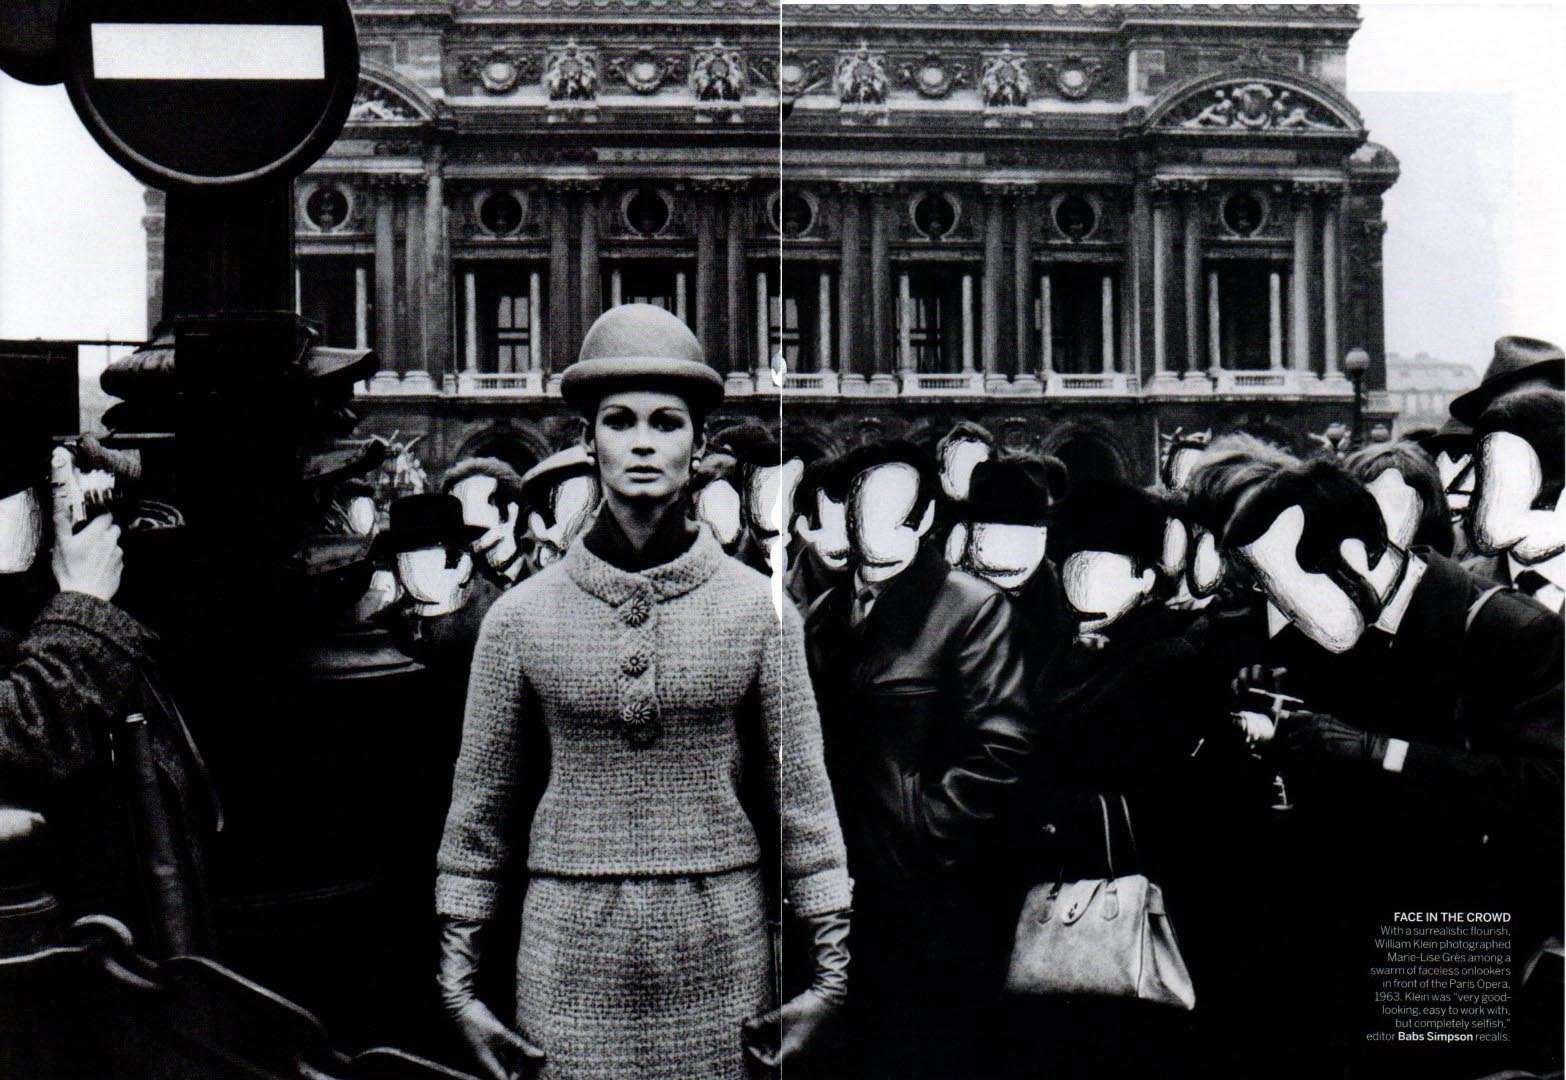 Photo by William Klein for Vogue, 1963. Fashion Editor Babs Simpson